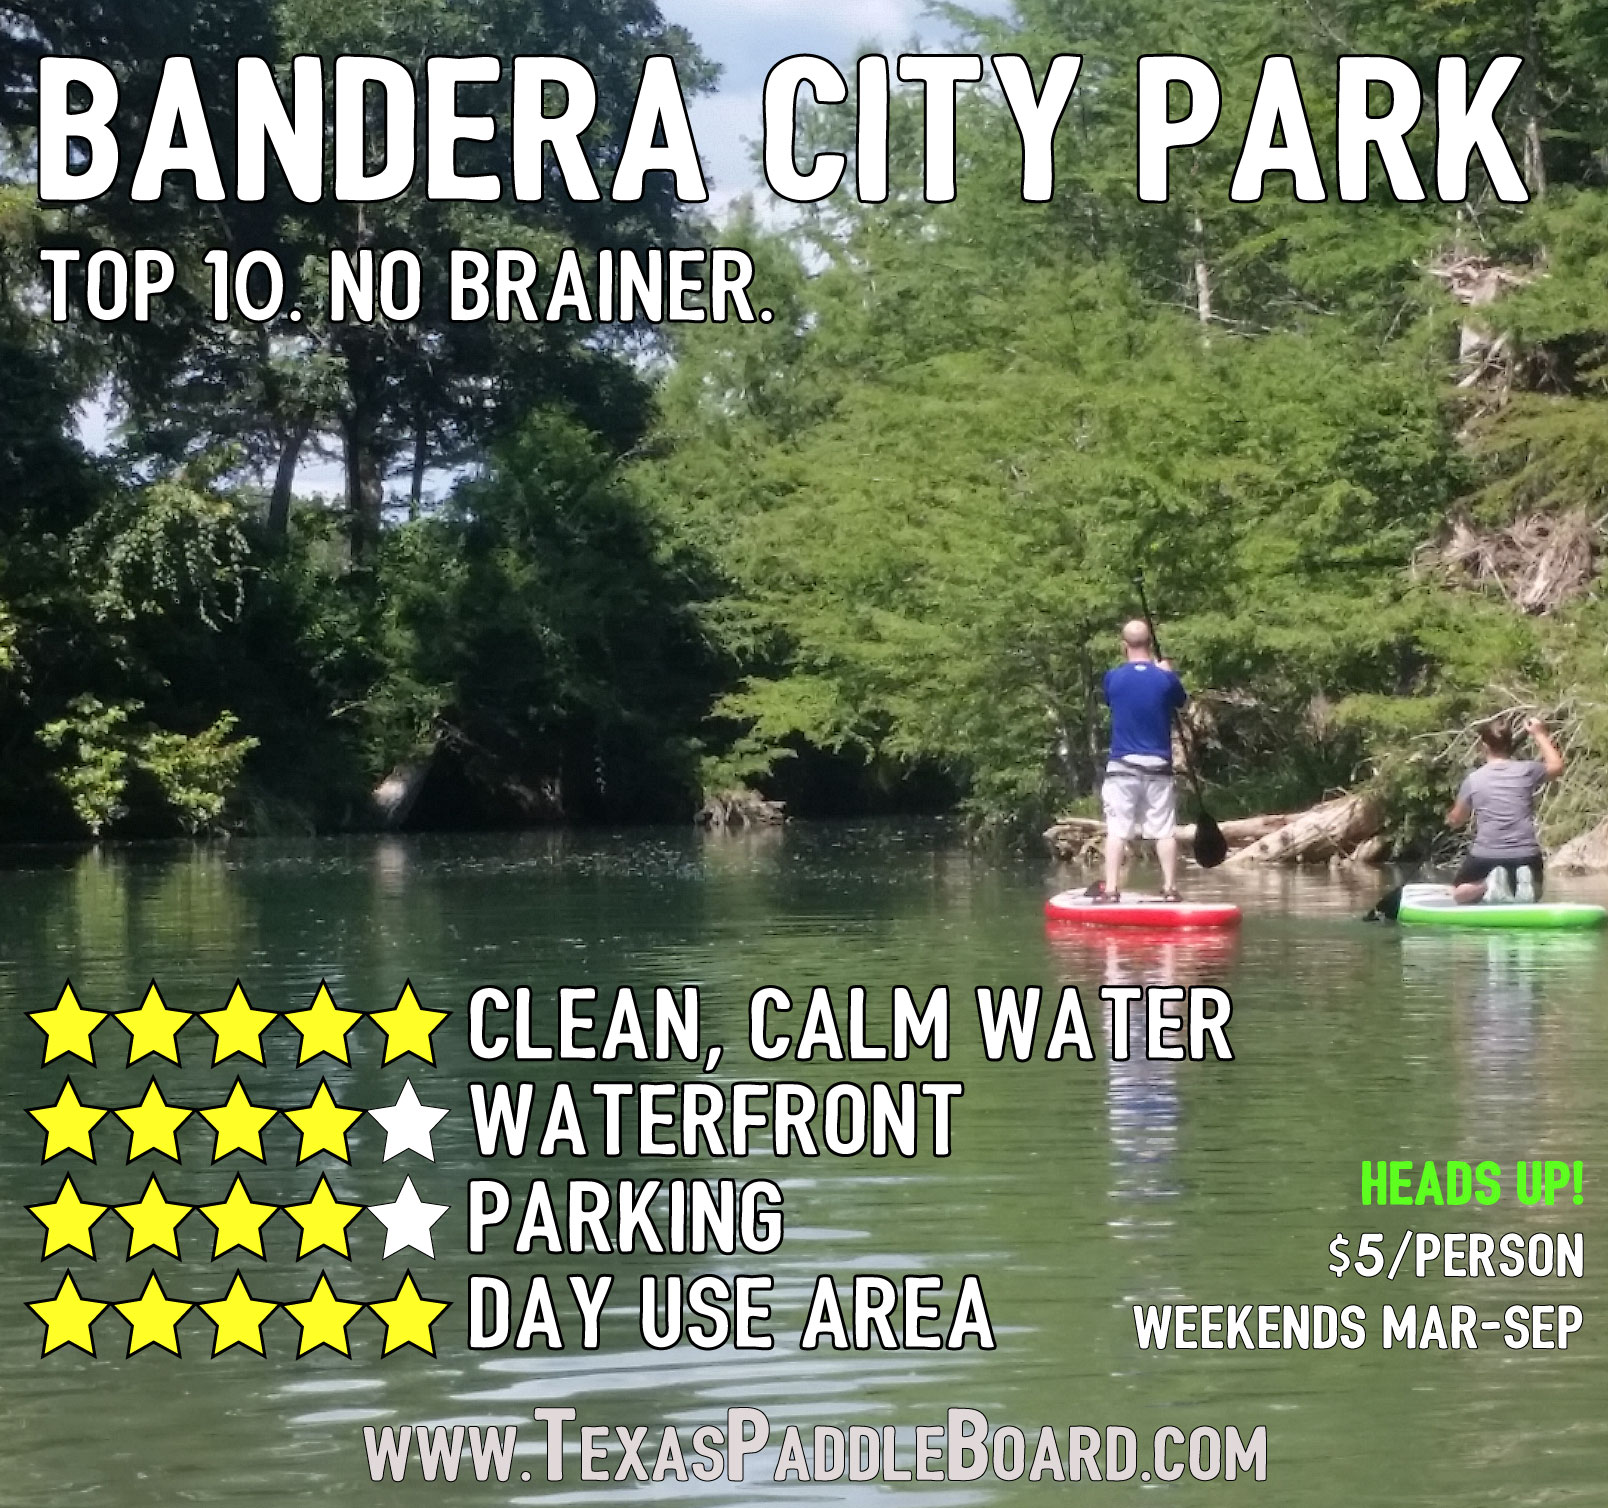 Bandera City Park review-01